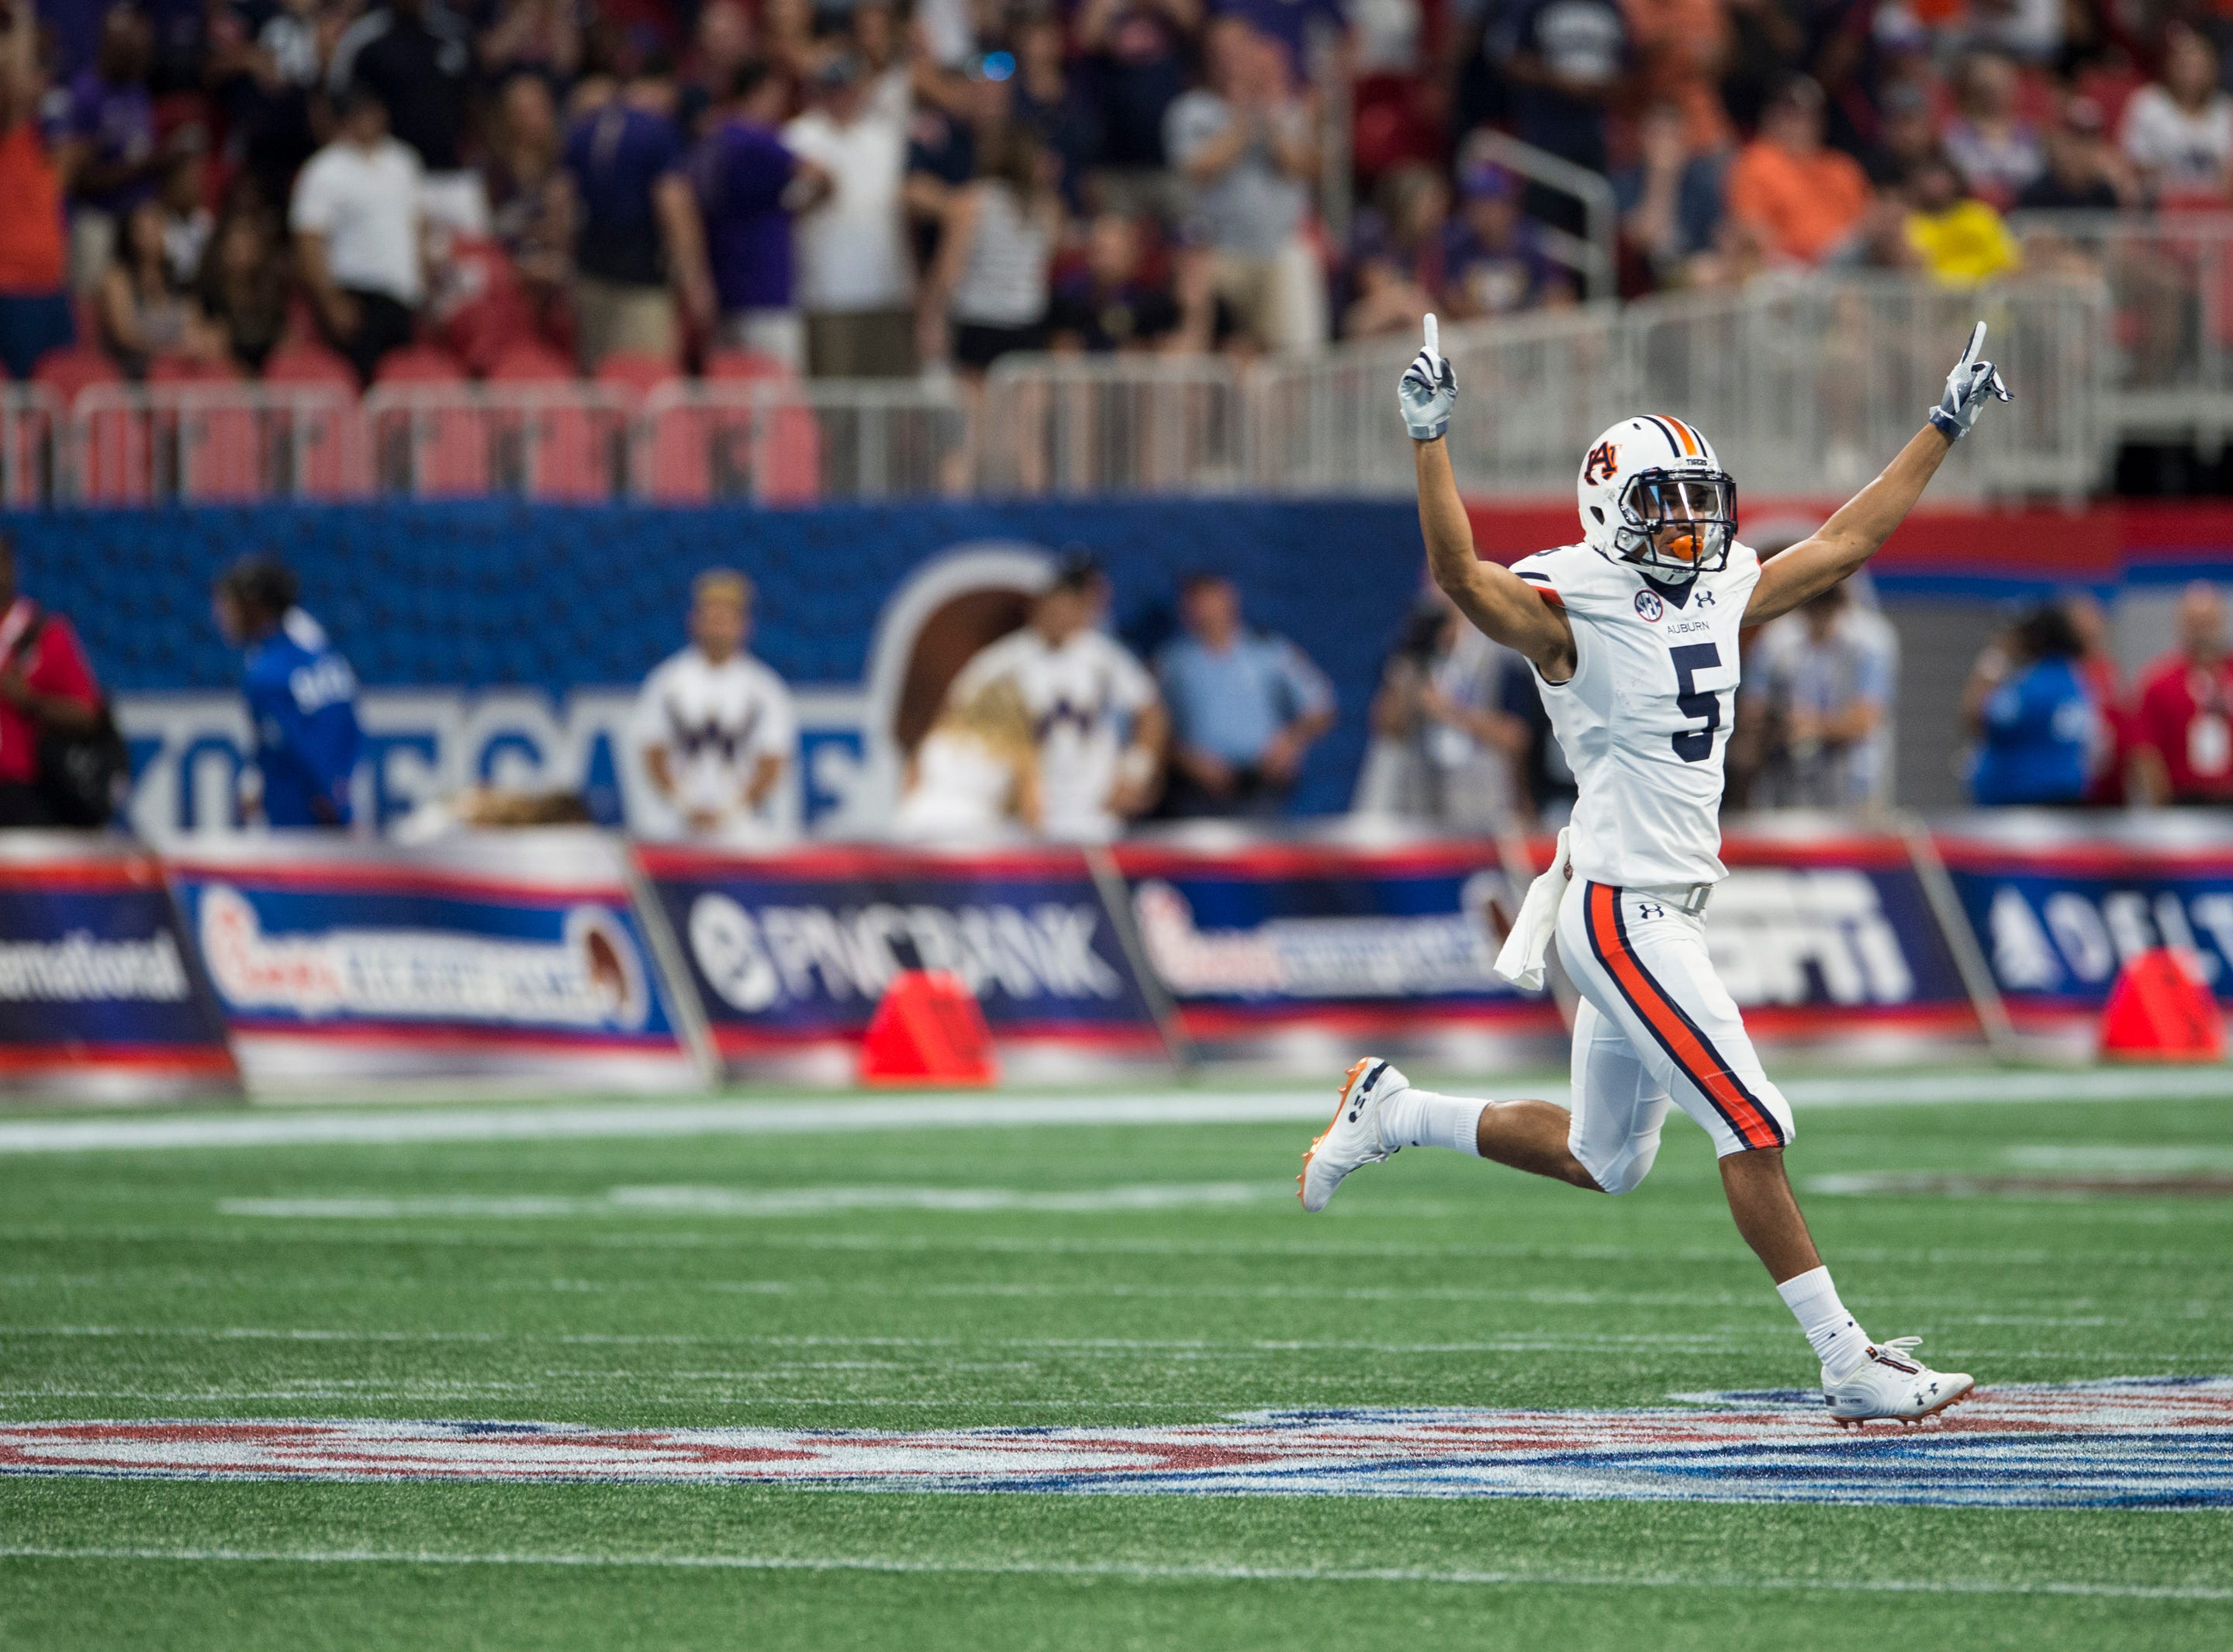 Auburn's Anthony Schwartz (5) celebrates as Auburn gets a game sealing first down at Mercedes-Benz Stadium in Atlanta, Ga., on Saturday, Sept. 1, 2018. Auburn defeated Washington 21-16 in the Chick-fil-a Kickoff Game.